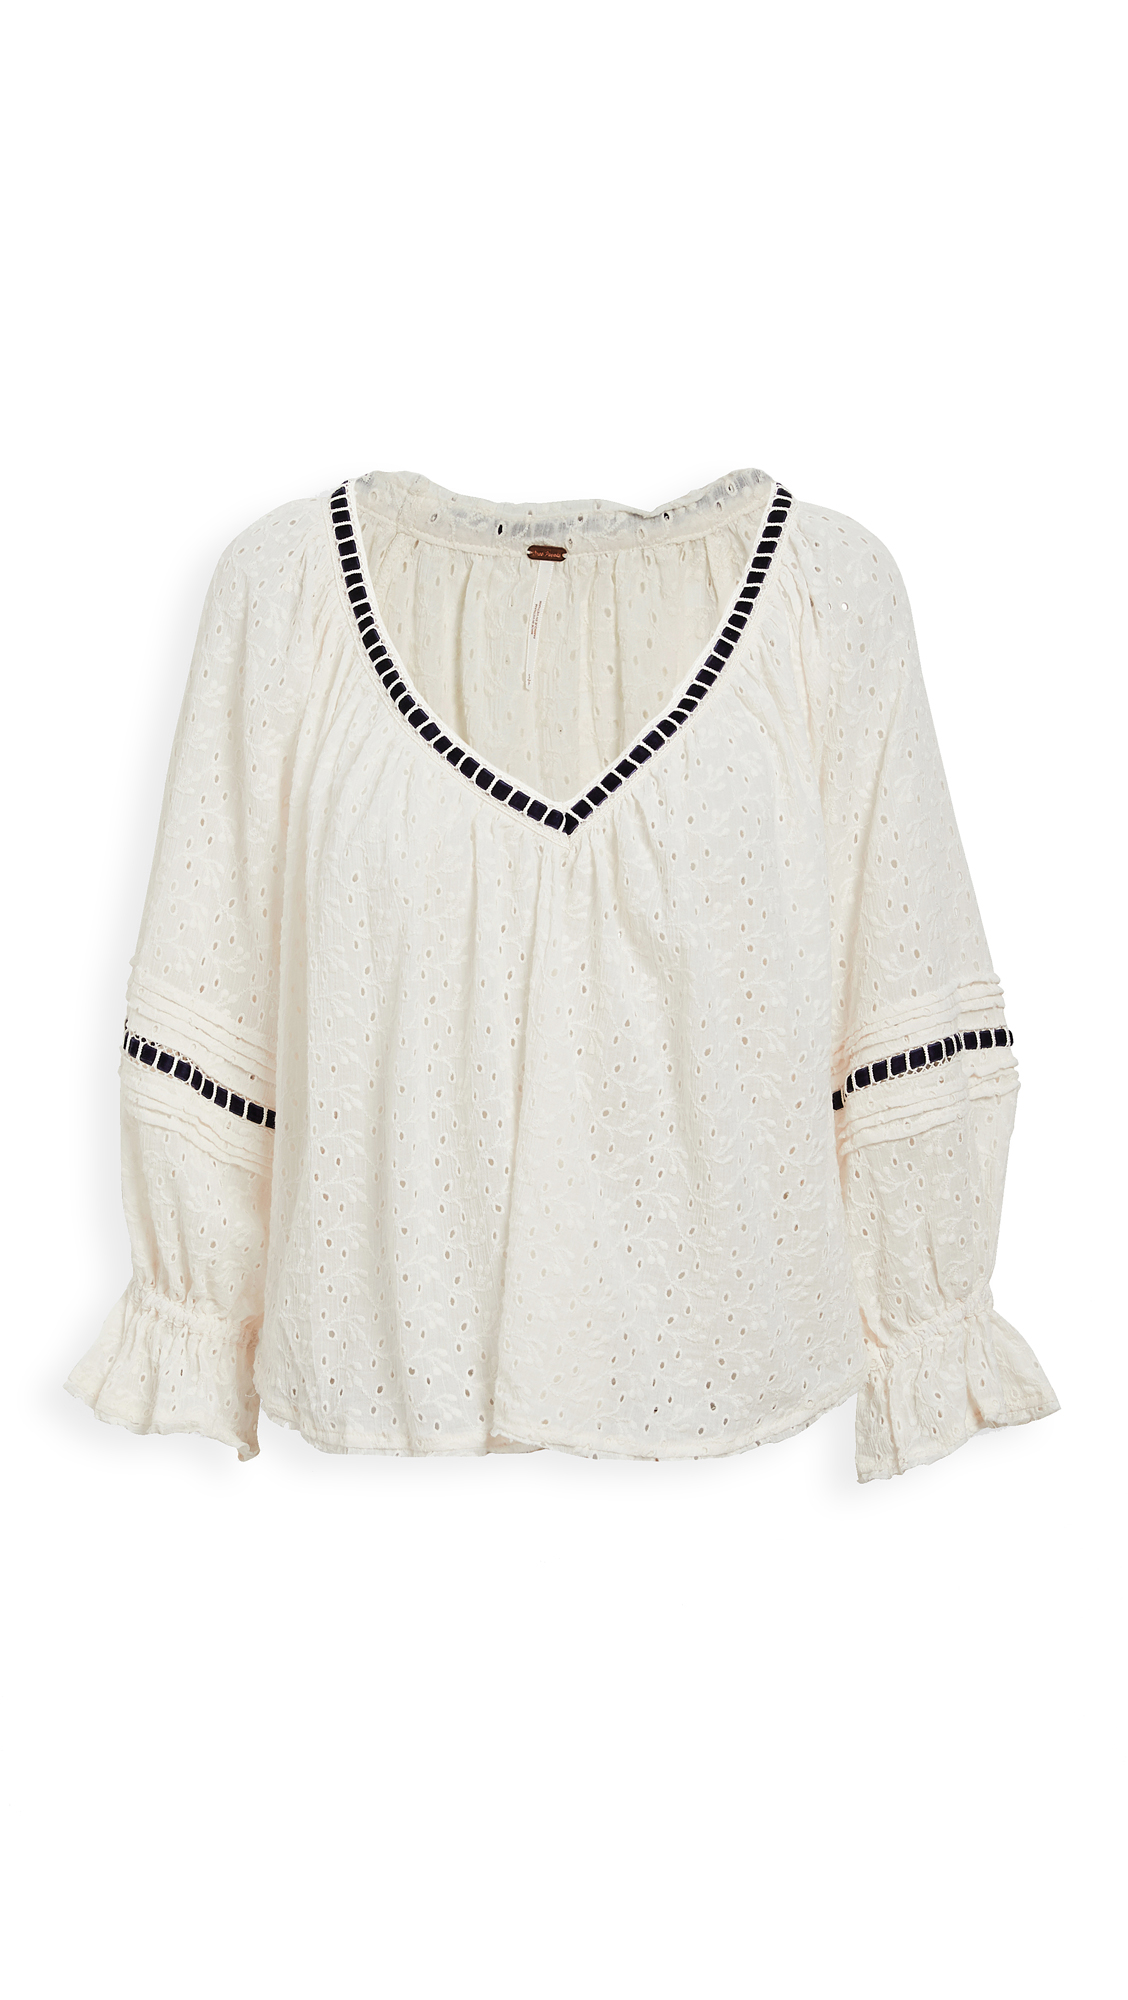 Photo of Free People Darcy Eyelet Blouse - shop Free People Tops, Blouses online